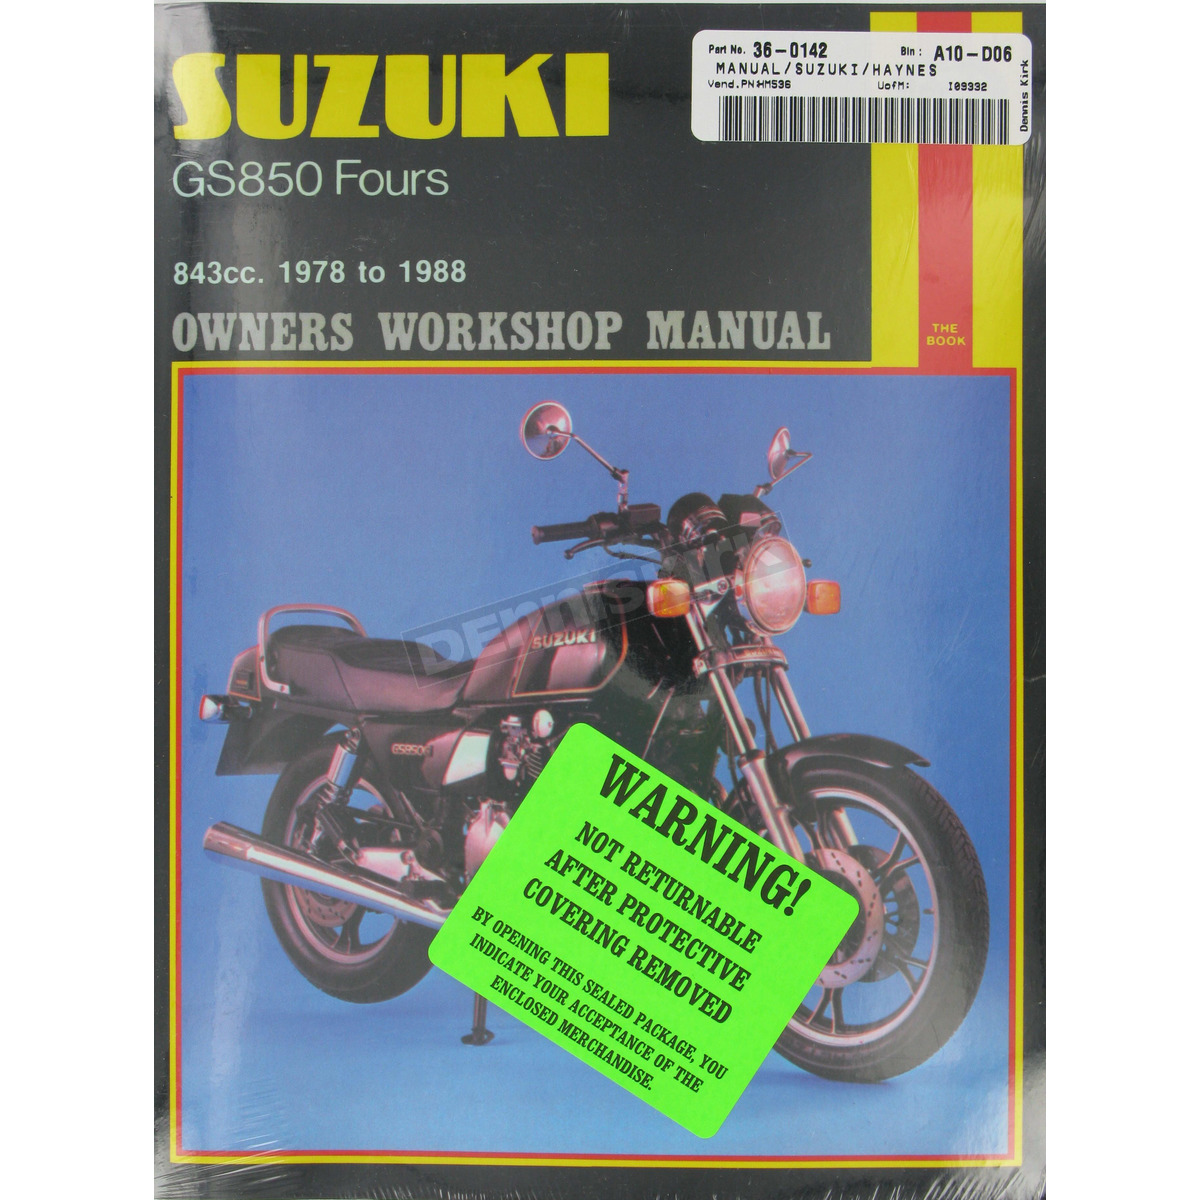 Haynes Suzuki GS850 Repair Manual - 536